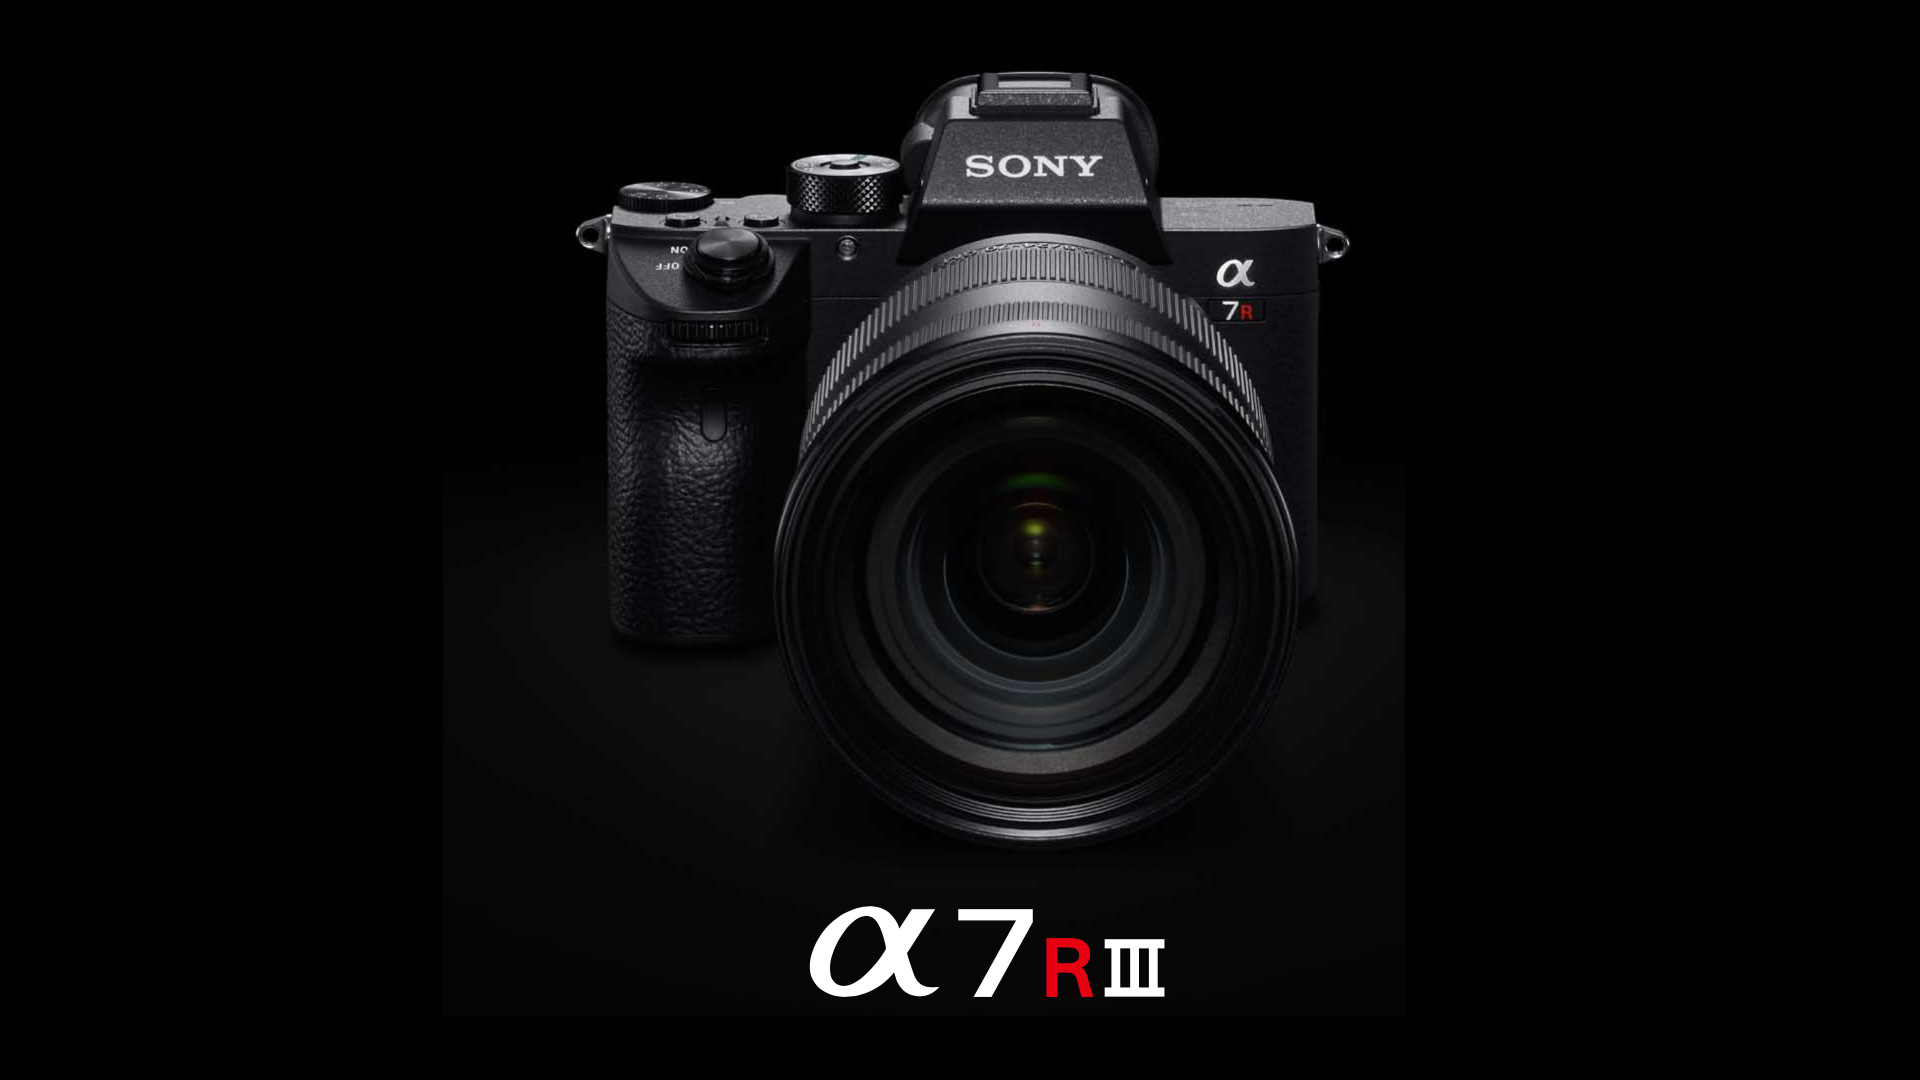 Sony A7R III announced with 4K HDR, ergonomic improvements